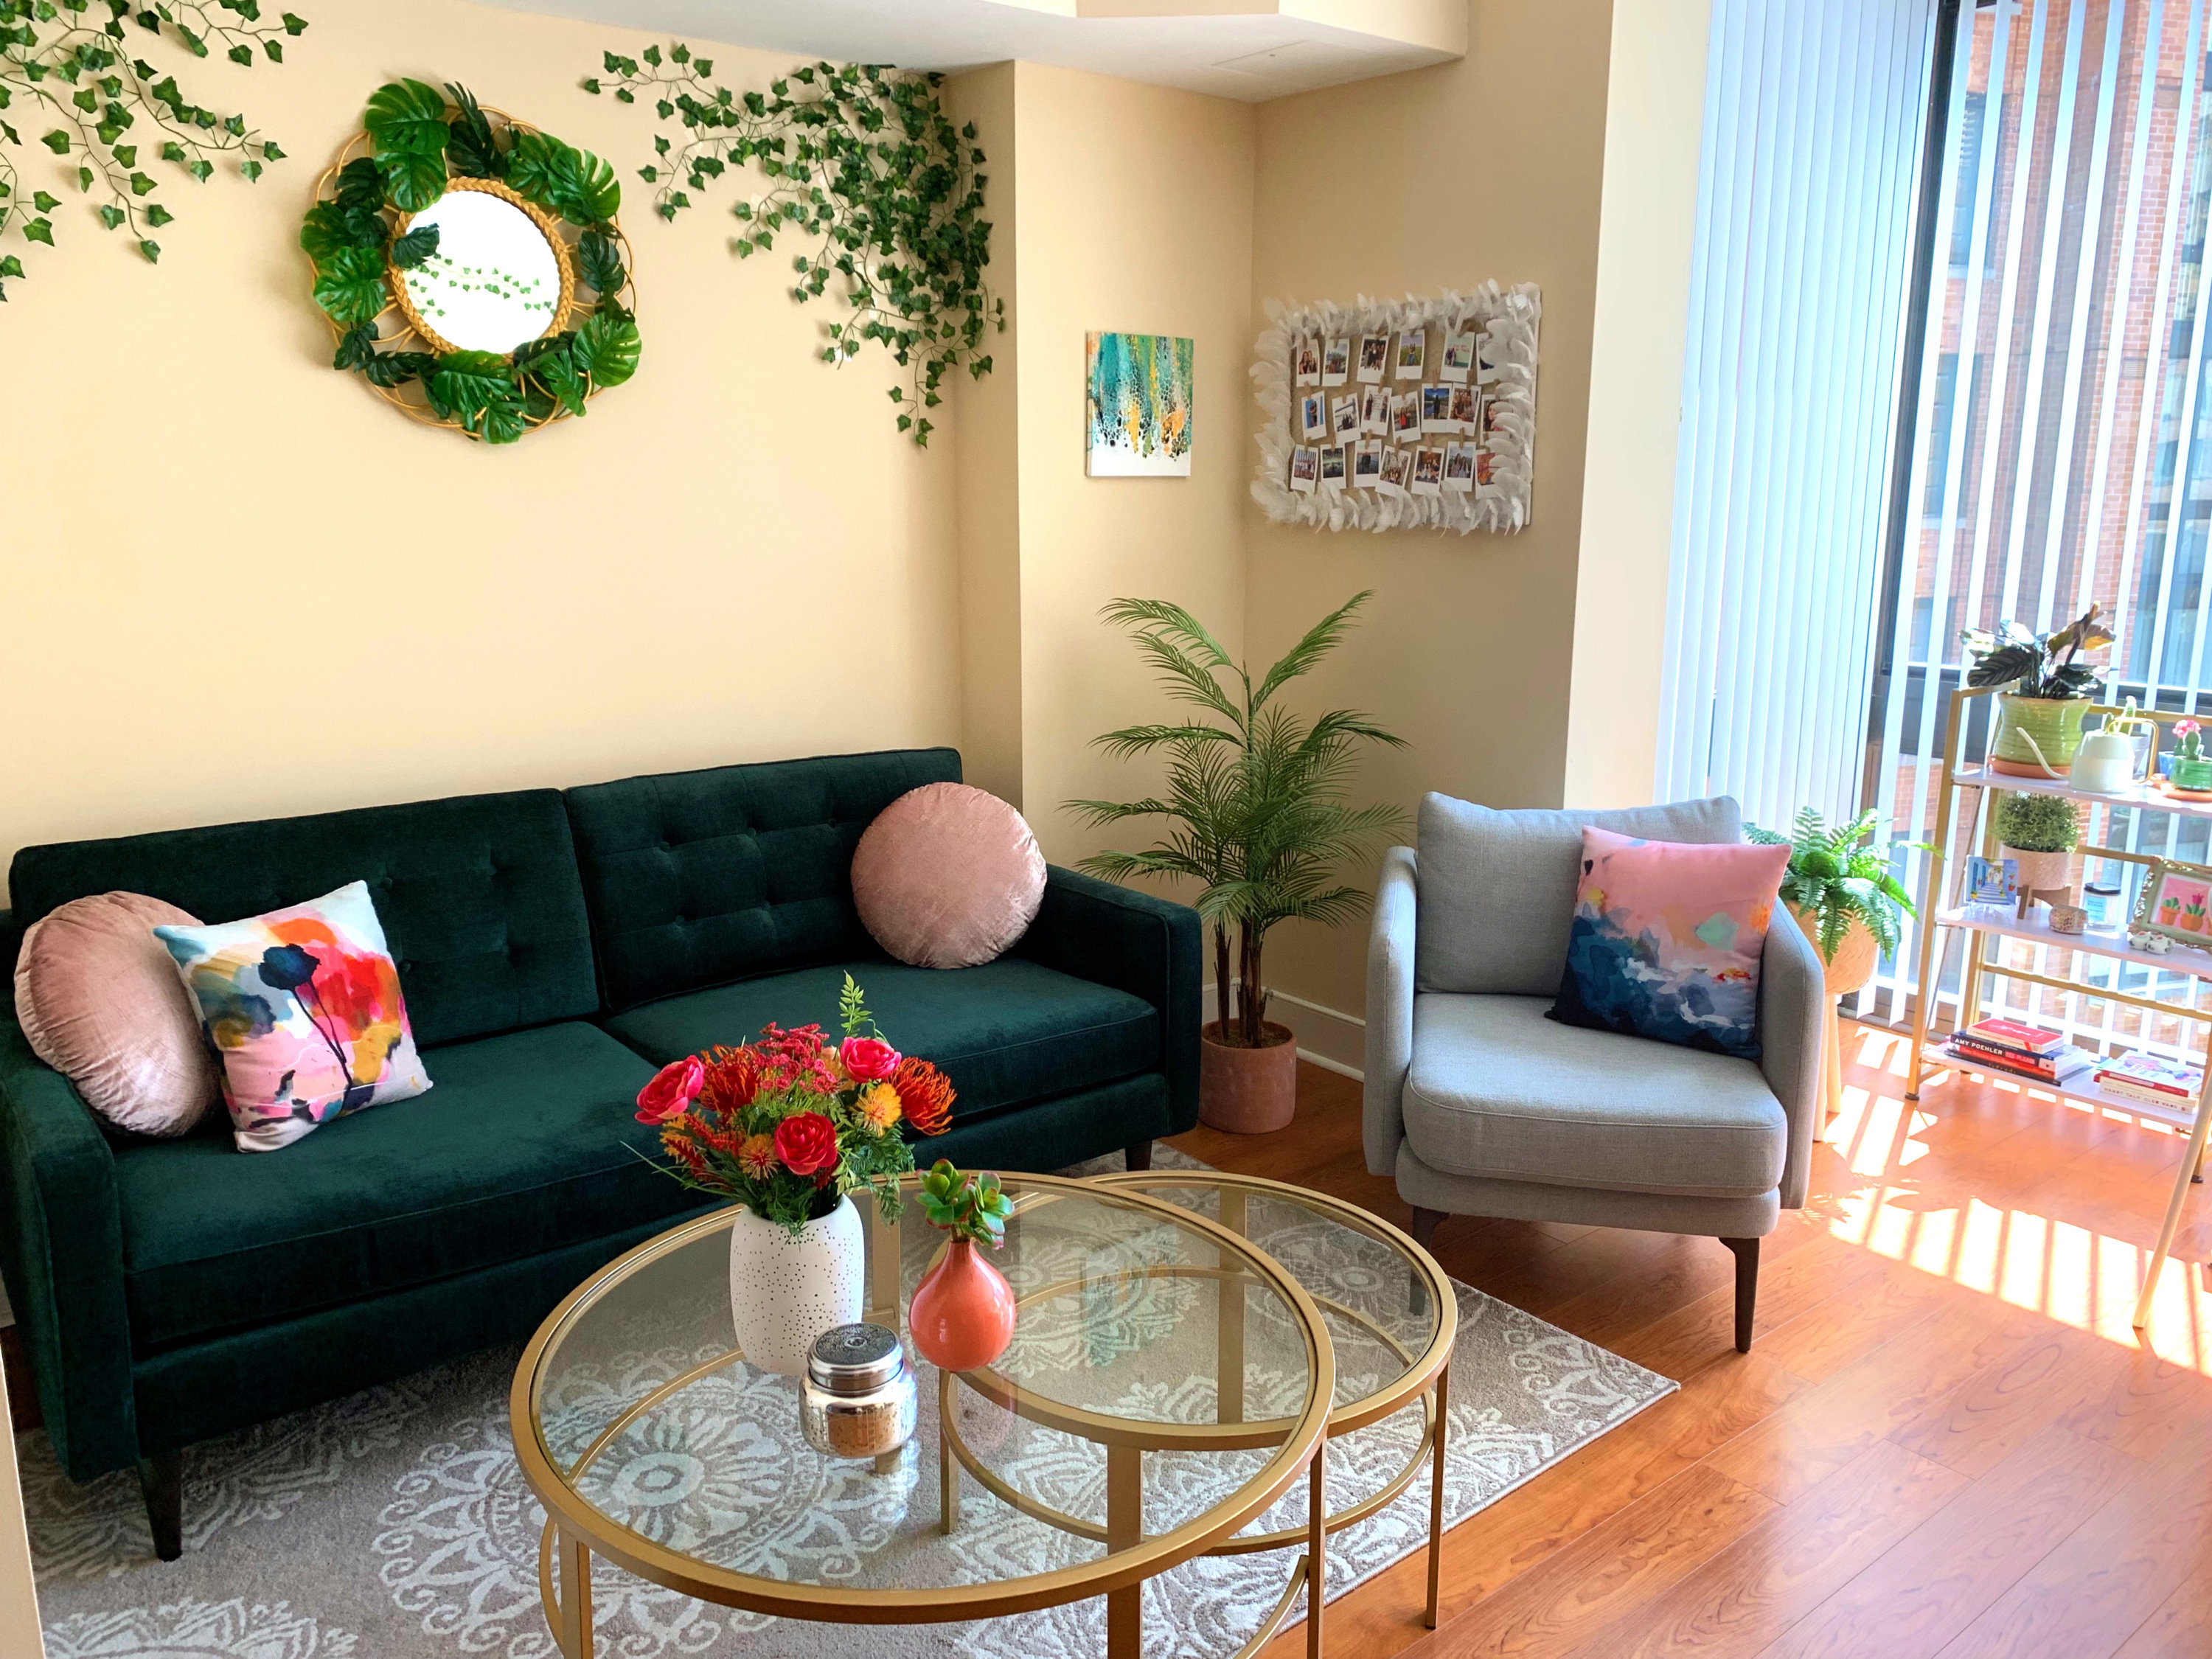 Look Inside My Home: A Mount Vernon Triangle Studio Full of Jewel Tones, Handmade Art, and Michael's DIY Projects